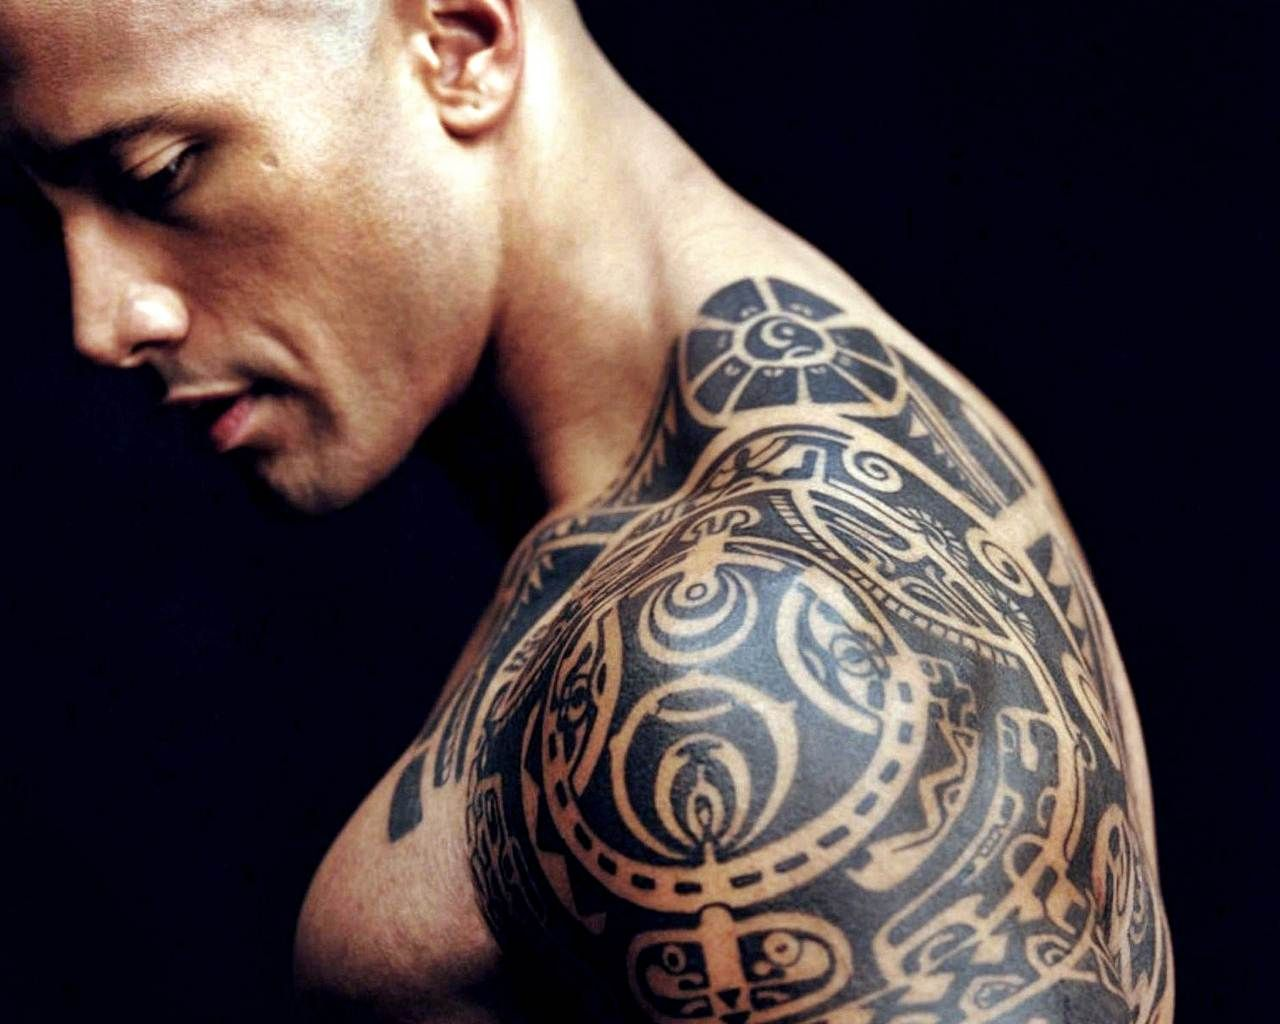 Dwayne Johnson Tattoo Name